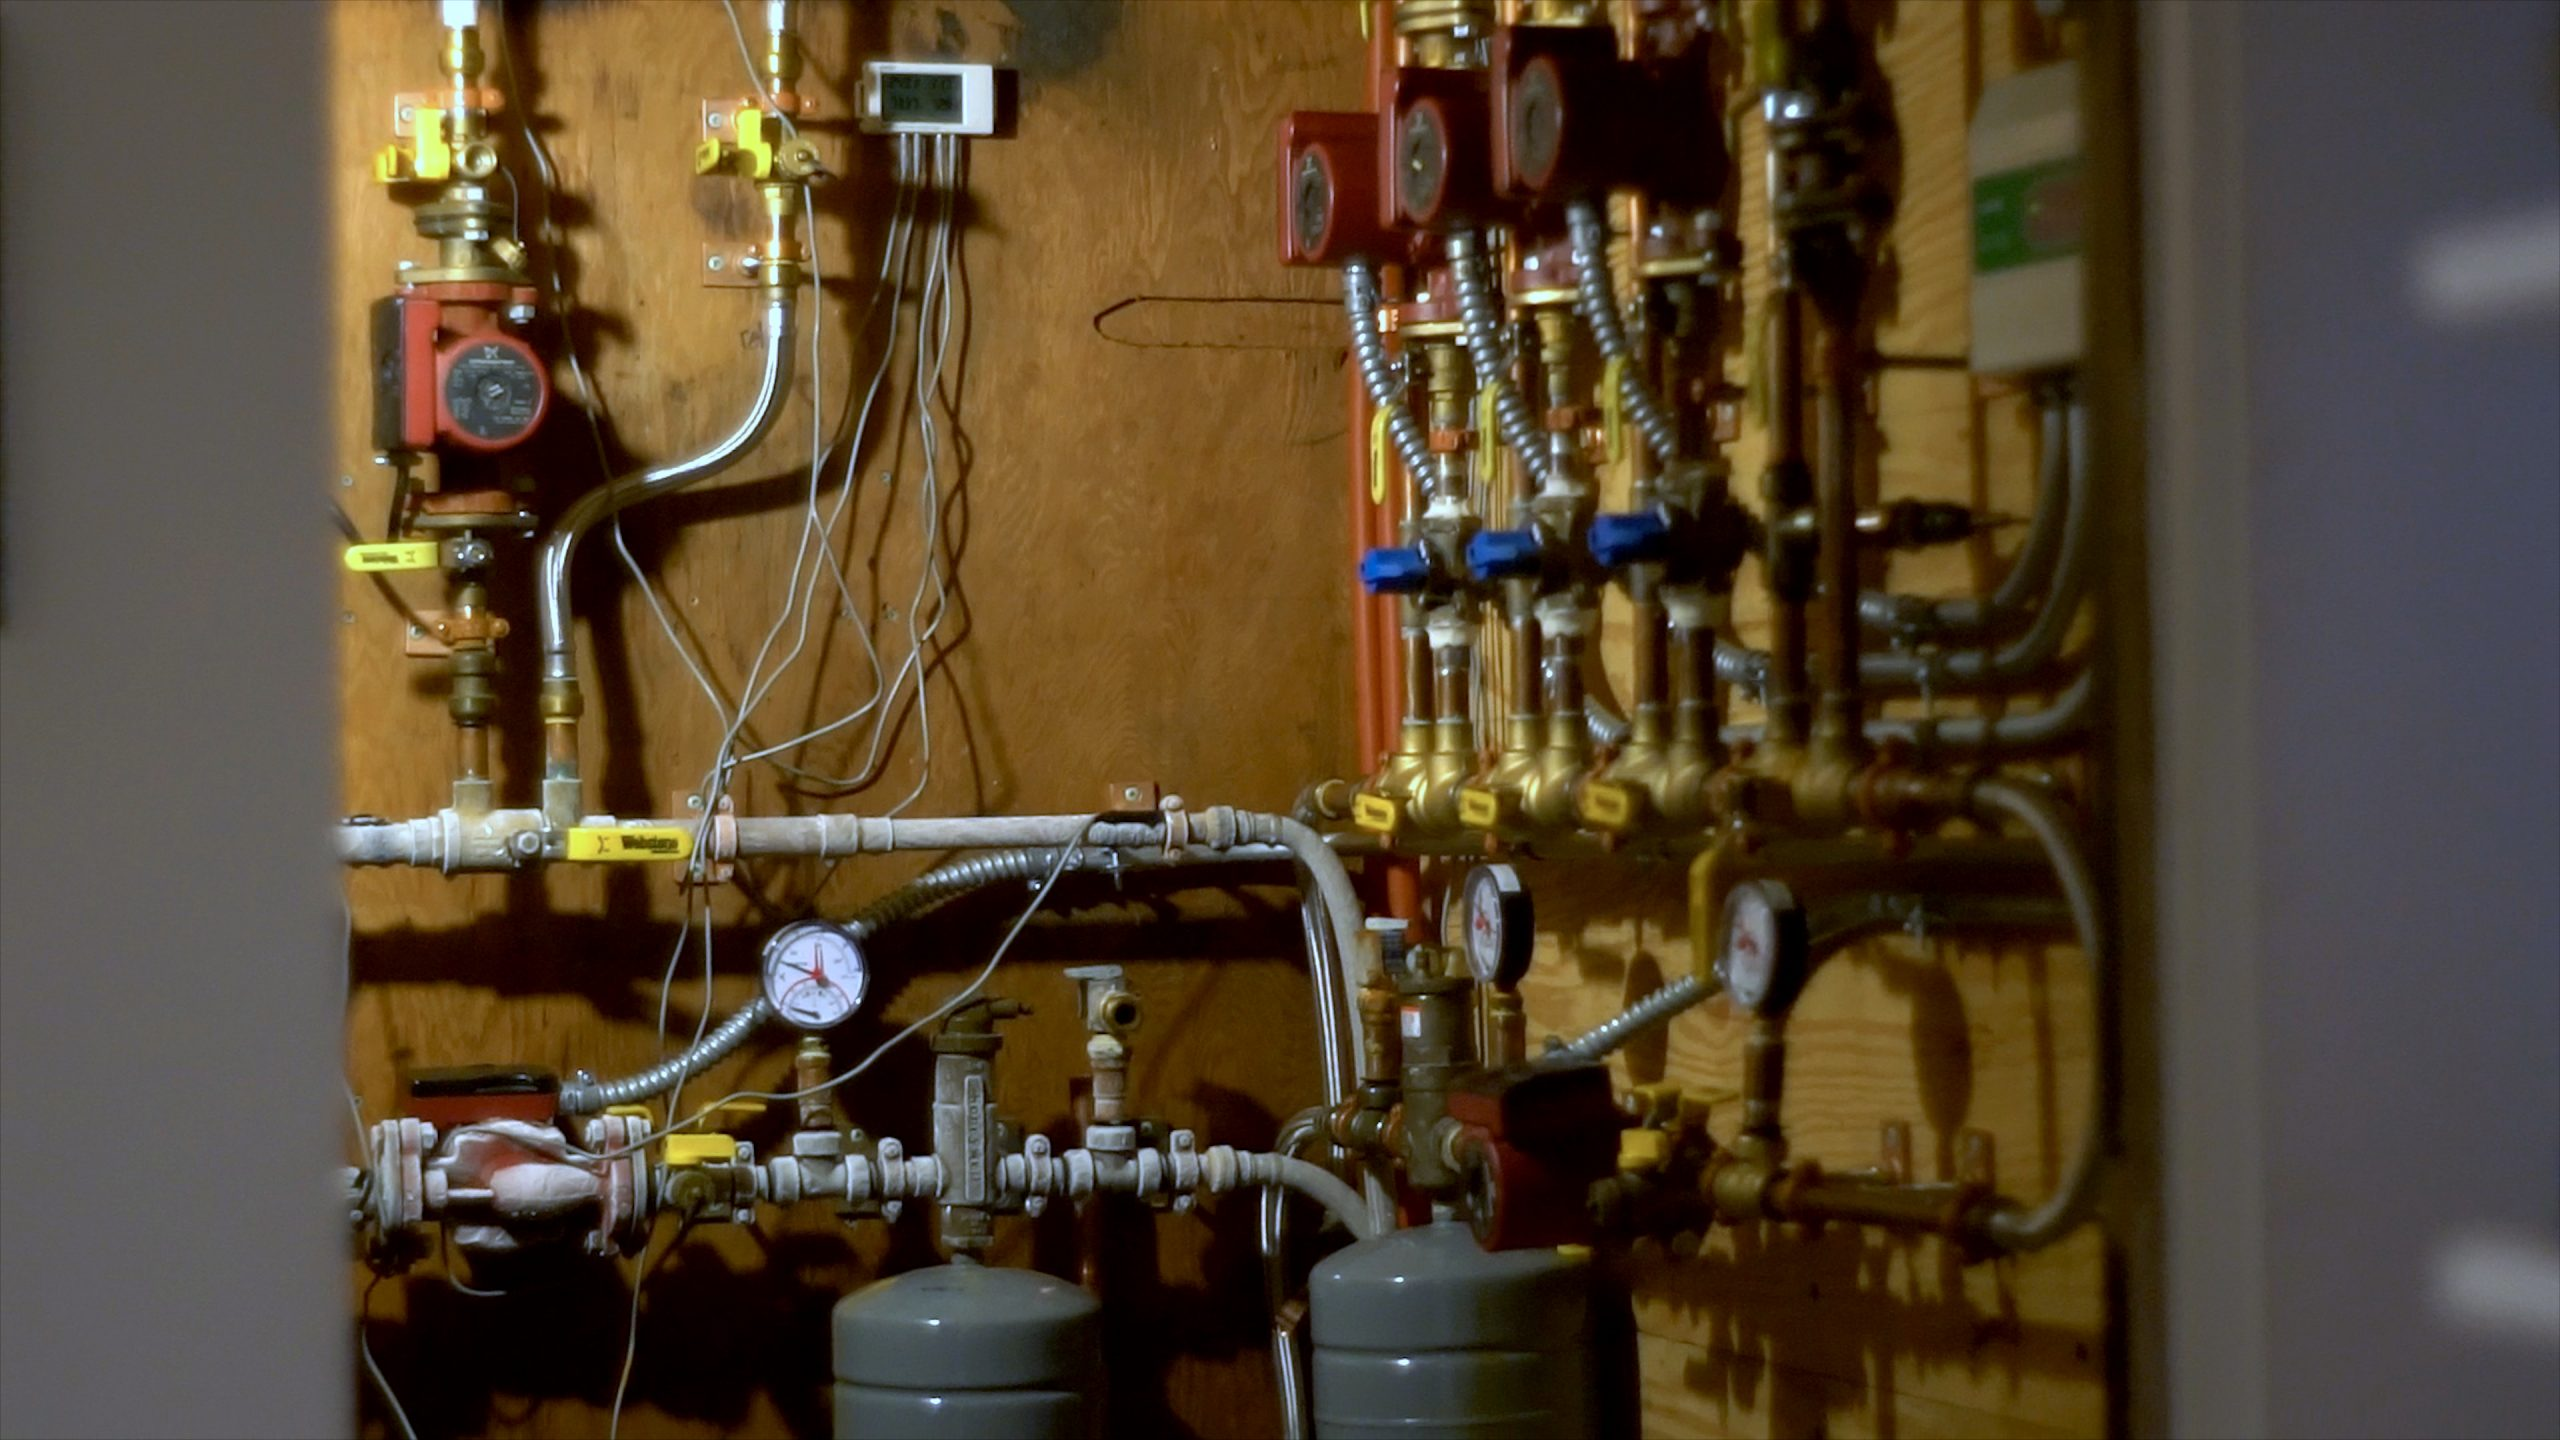 Pipes and gauges inside Tim Heppner's net-positive energy home in South Chicago